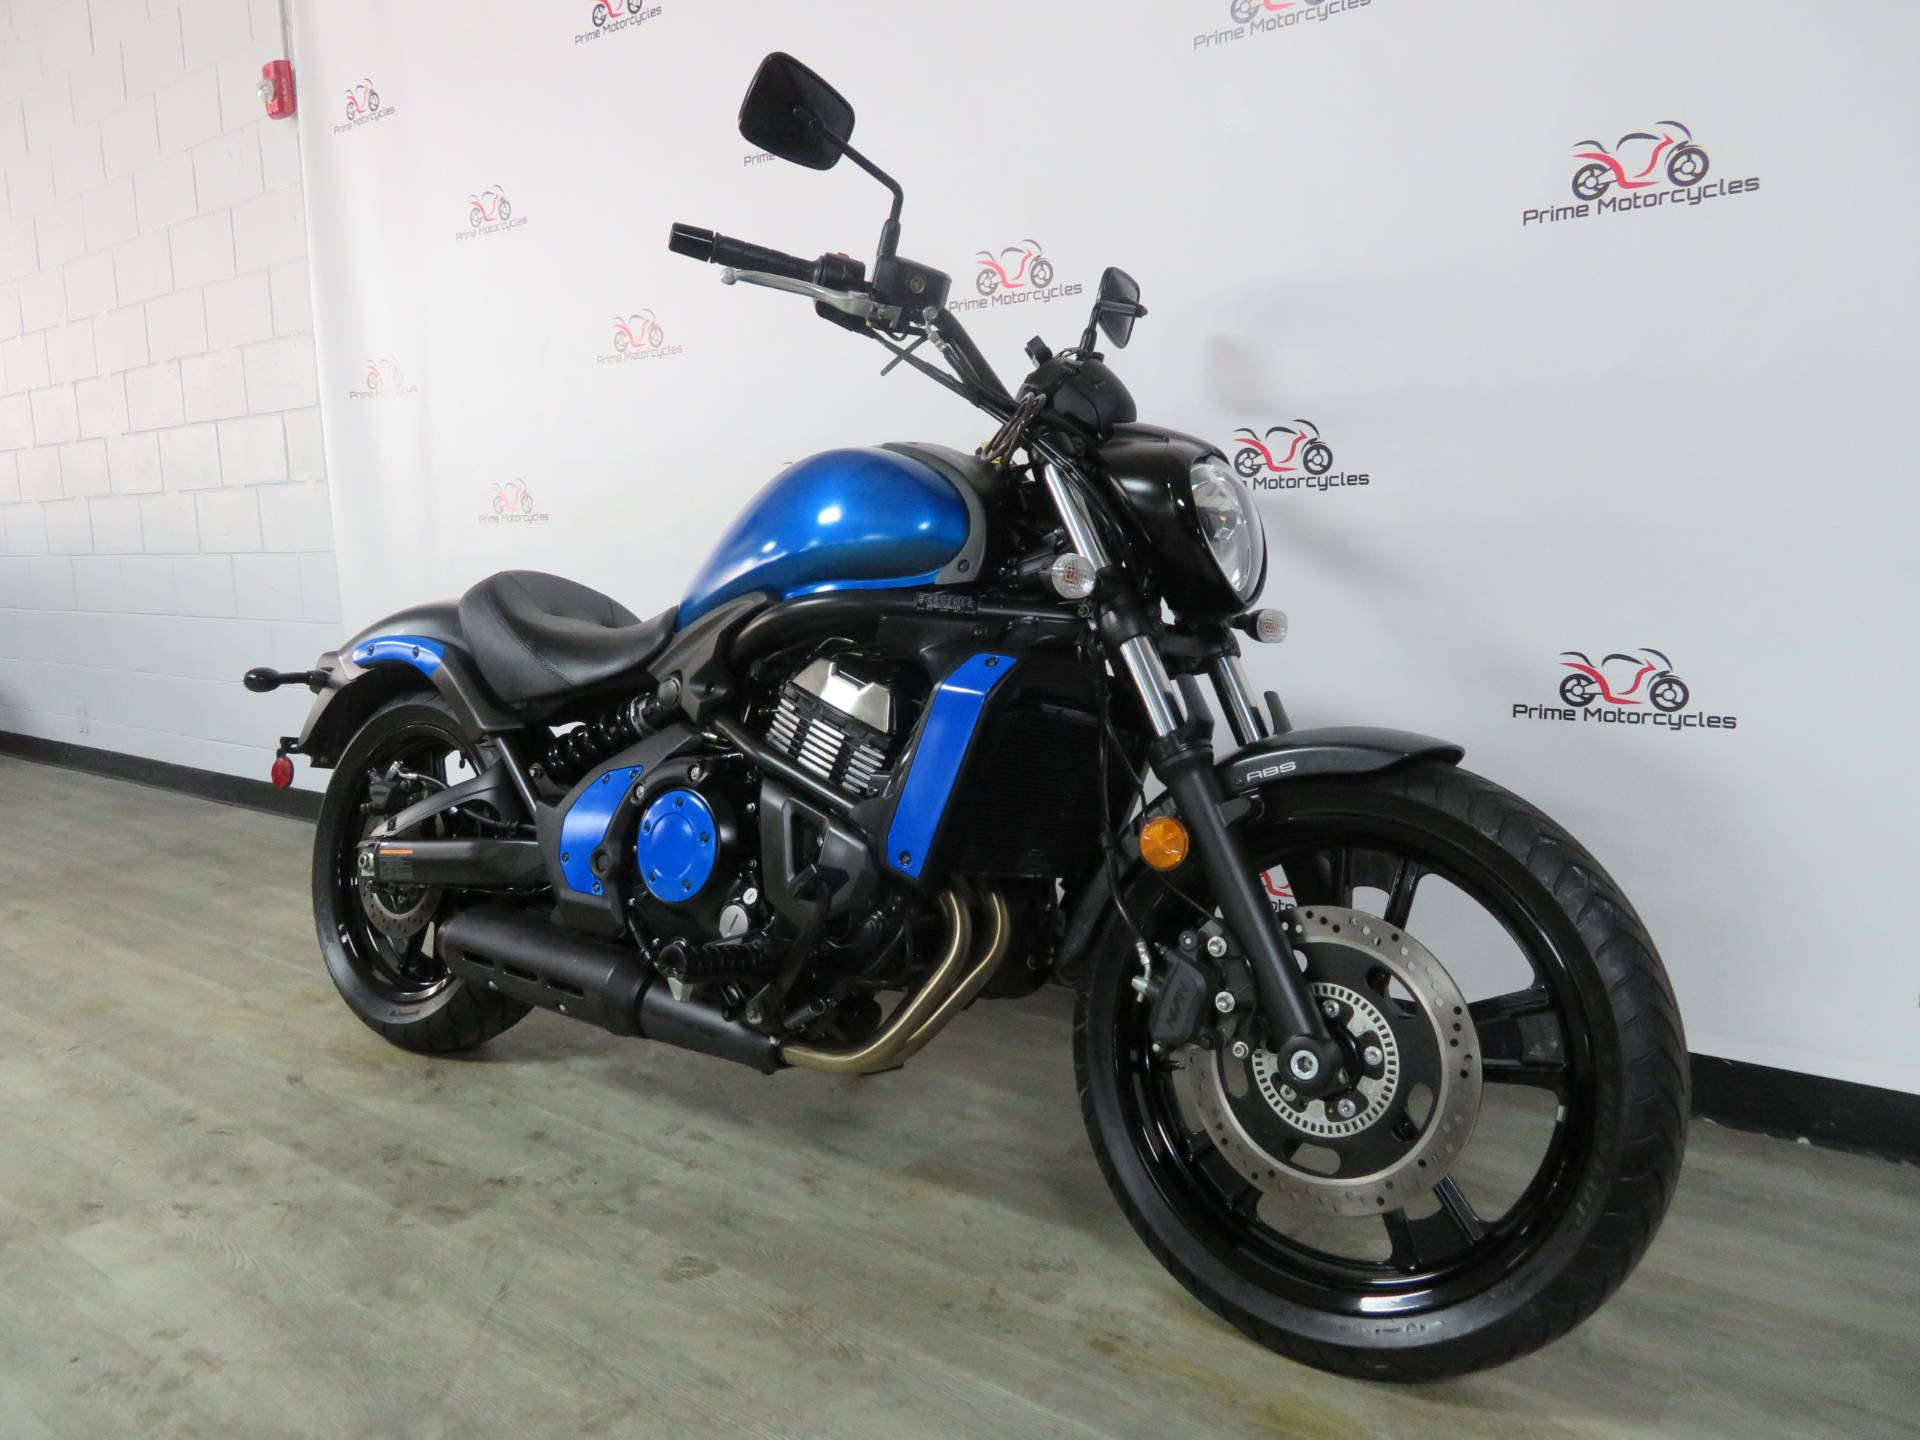 2017 Kawasaki Vulcan S ABS SE in Sanford, Florida - Photo 6